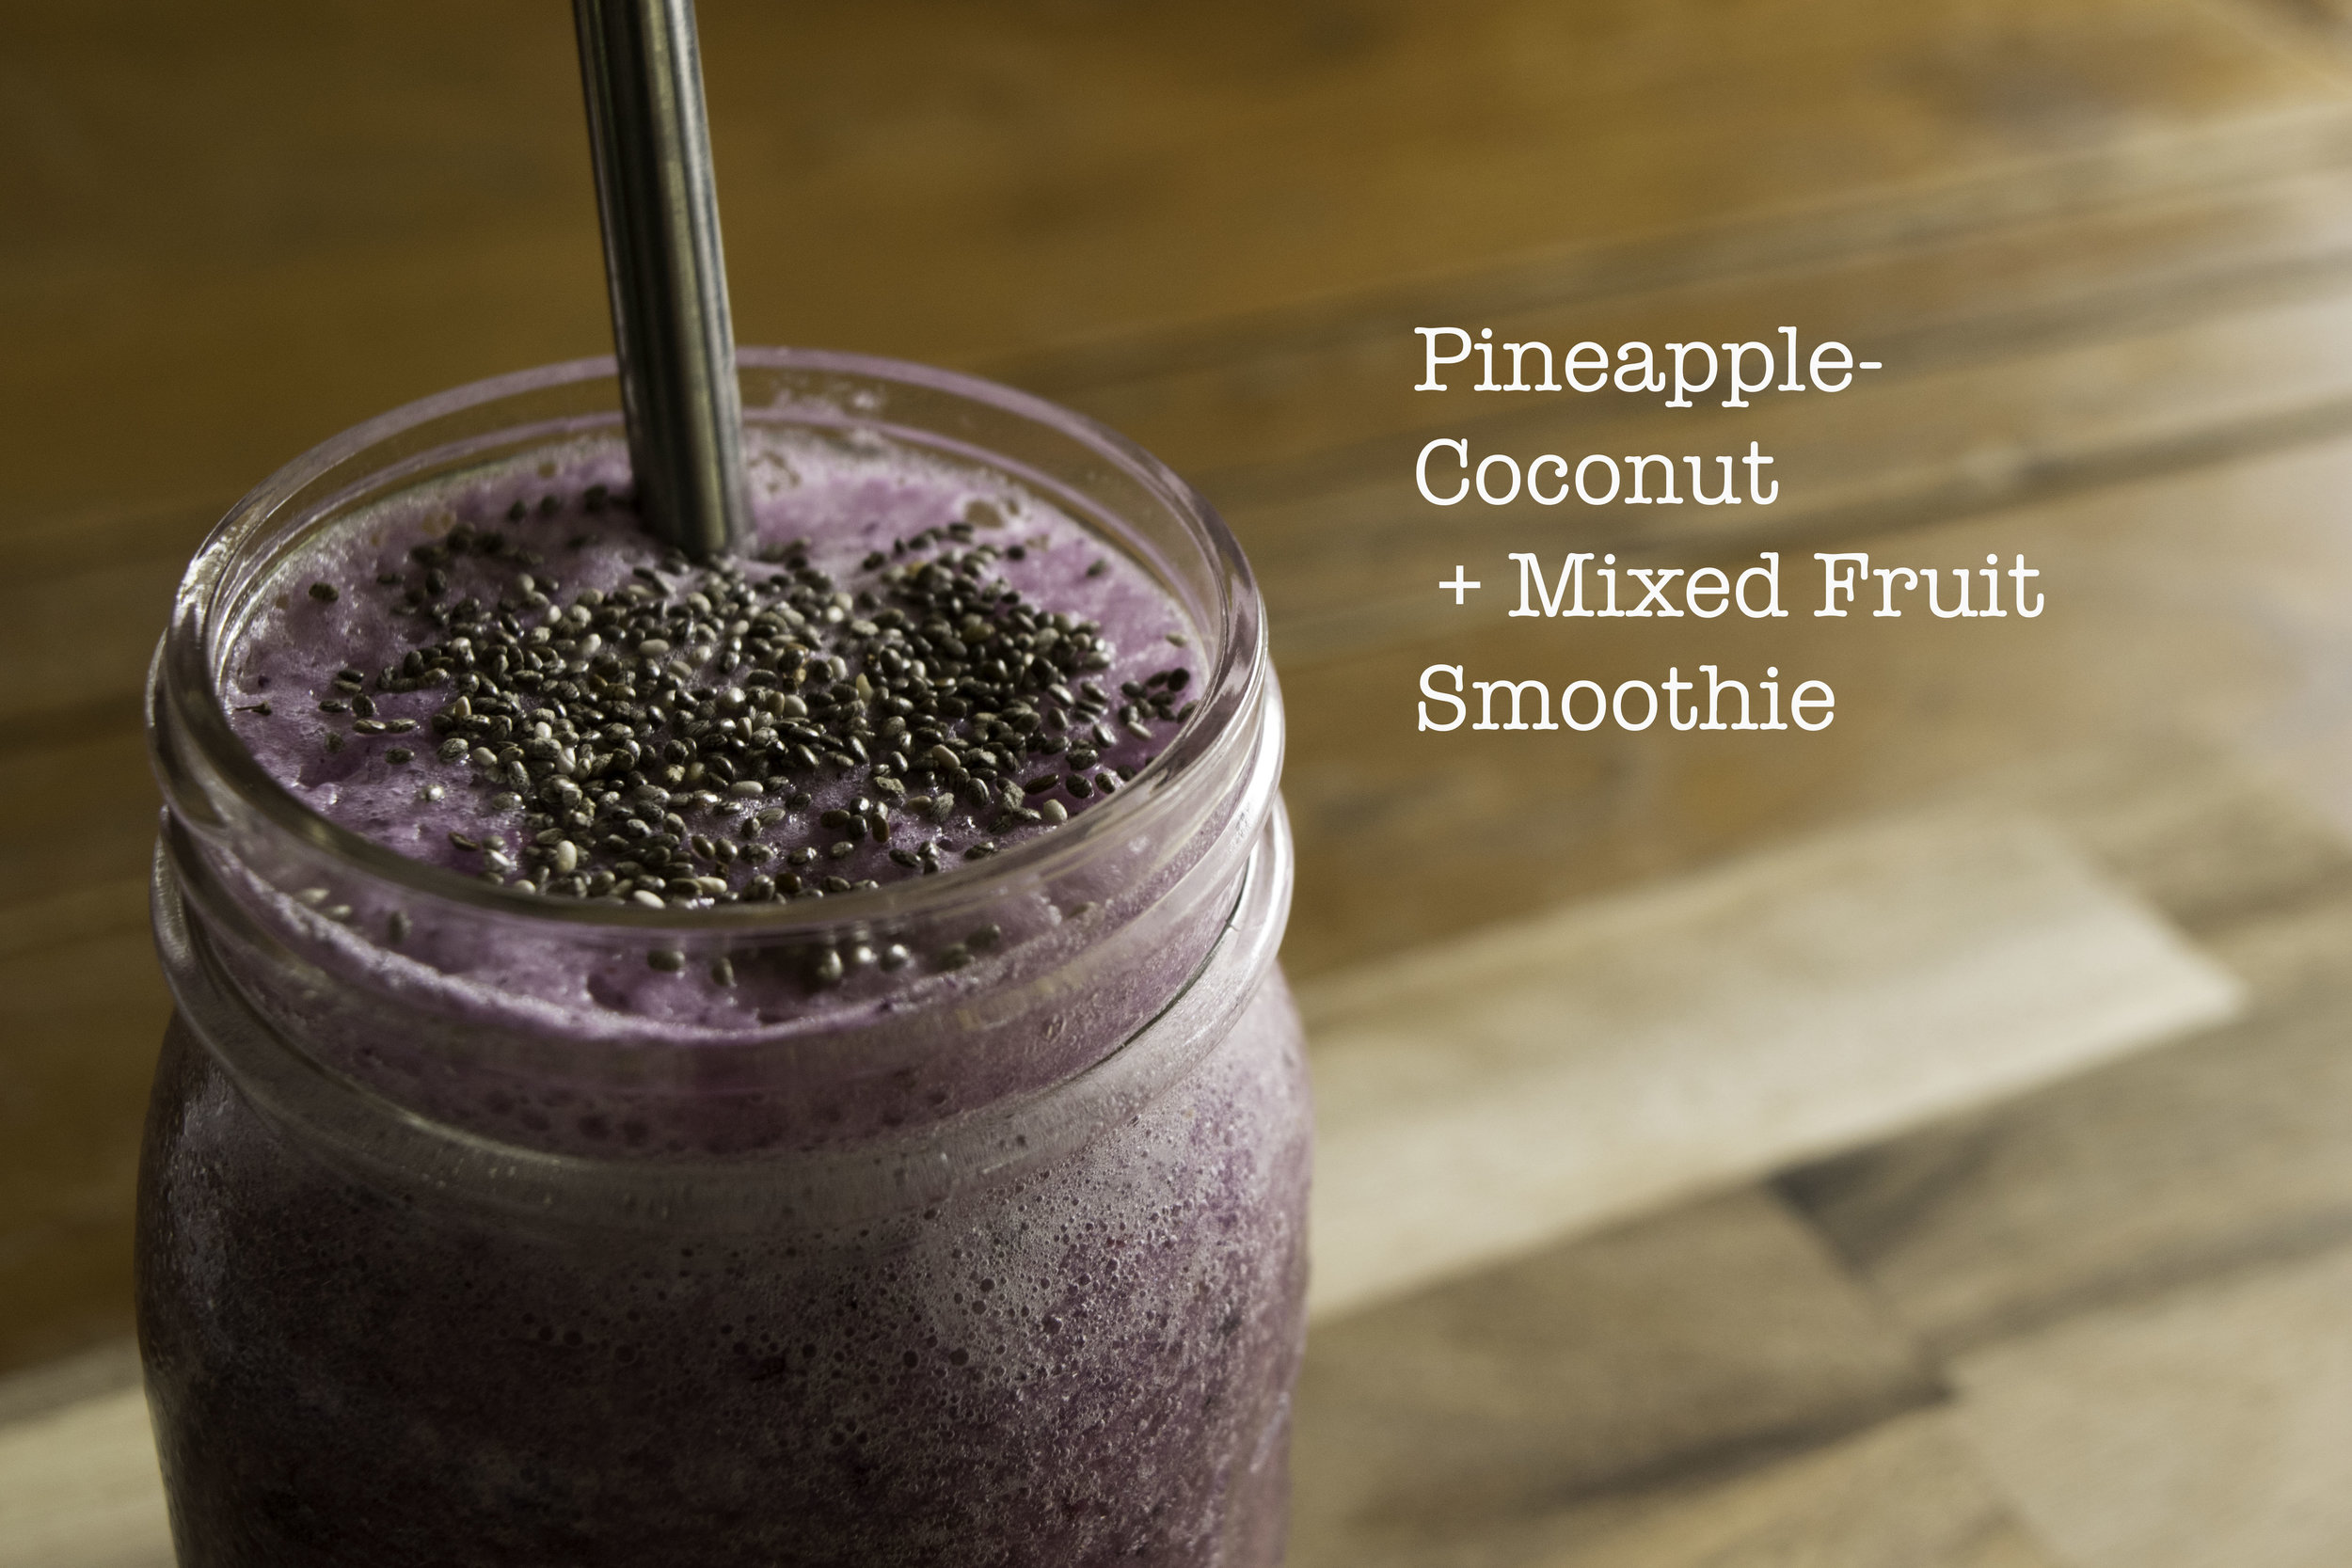 Pineapple-Coconut + Mixed Fruit Smoothie   The Savour